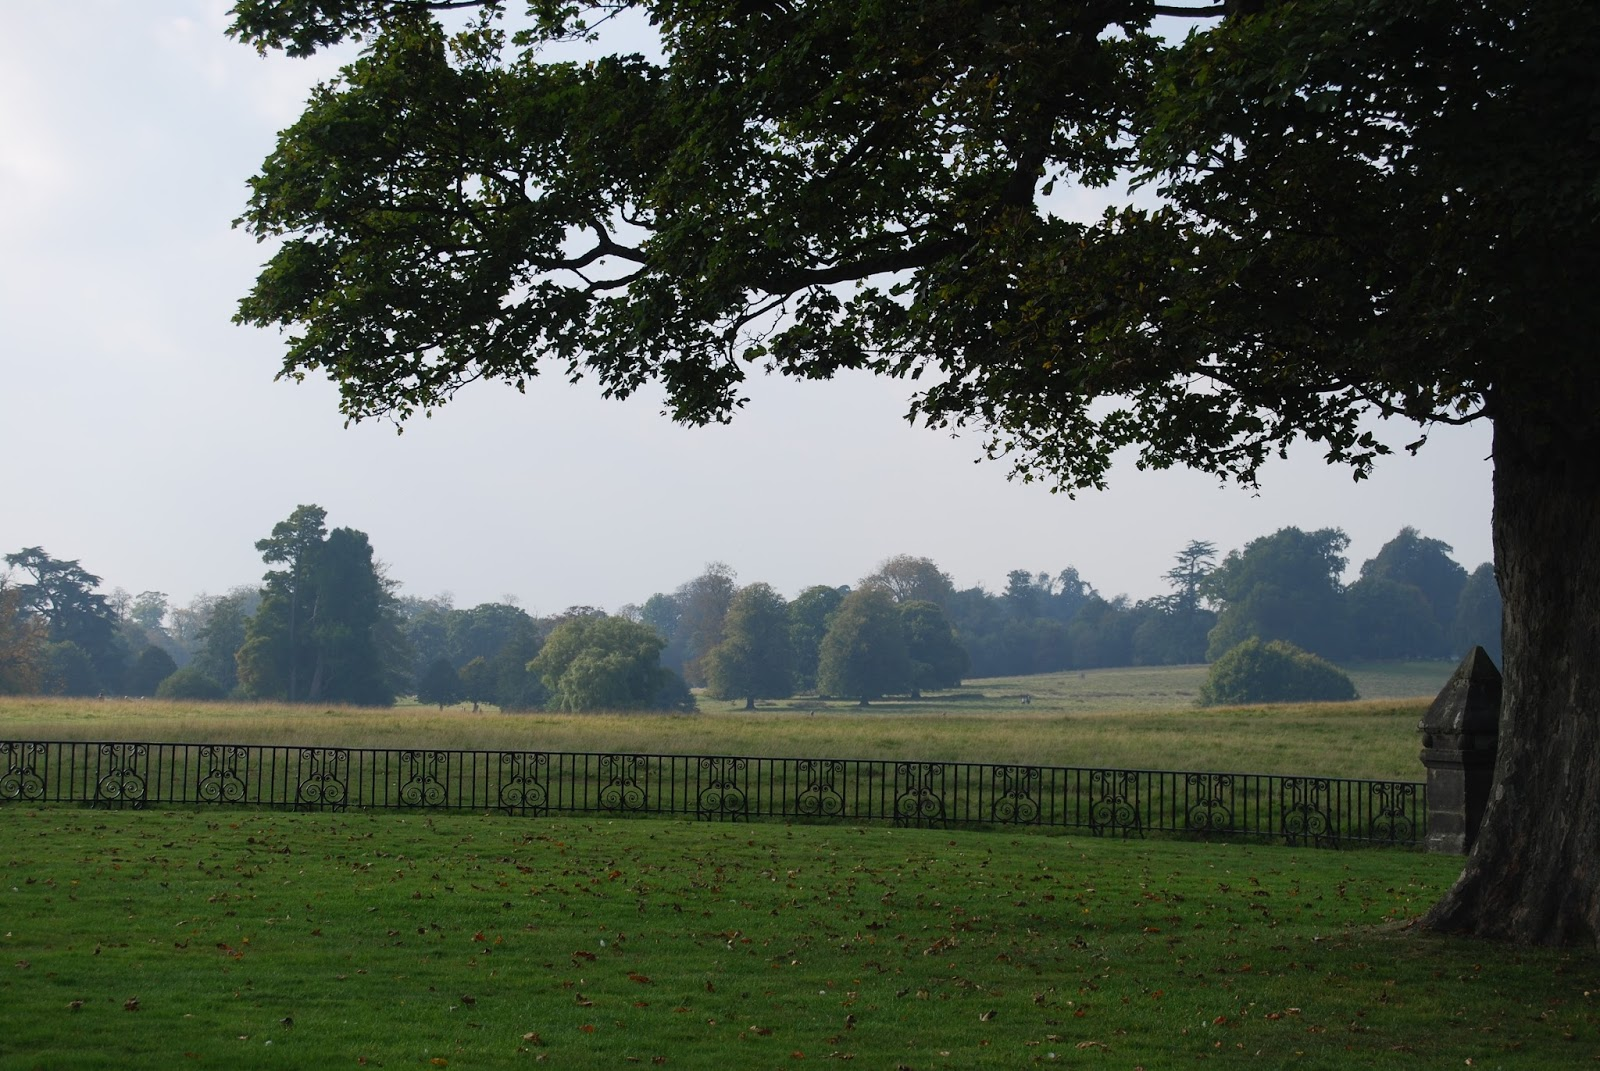 The Ha Ha by Capability Brown, Petworth House, photo by Modern Bric a Brac